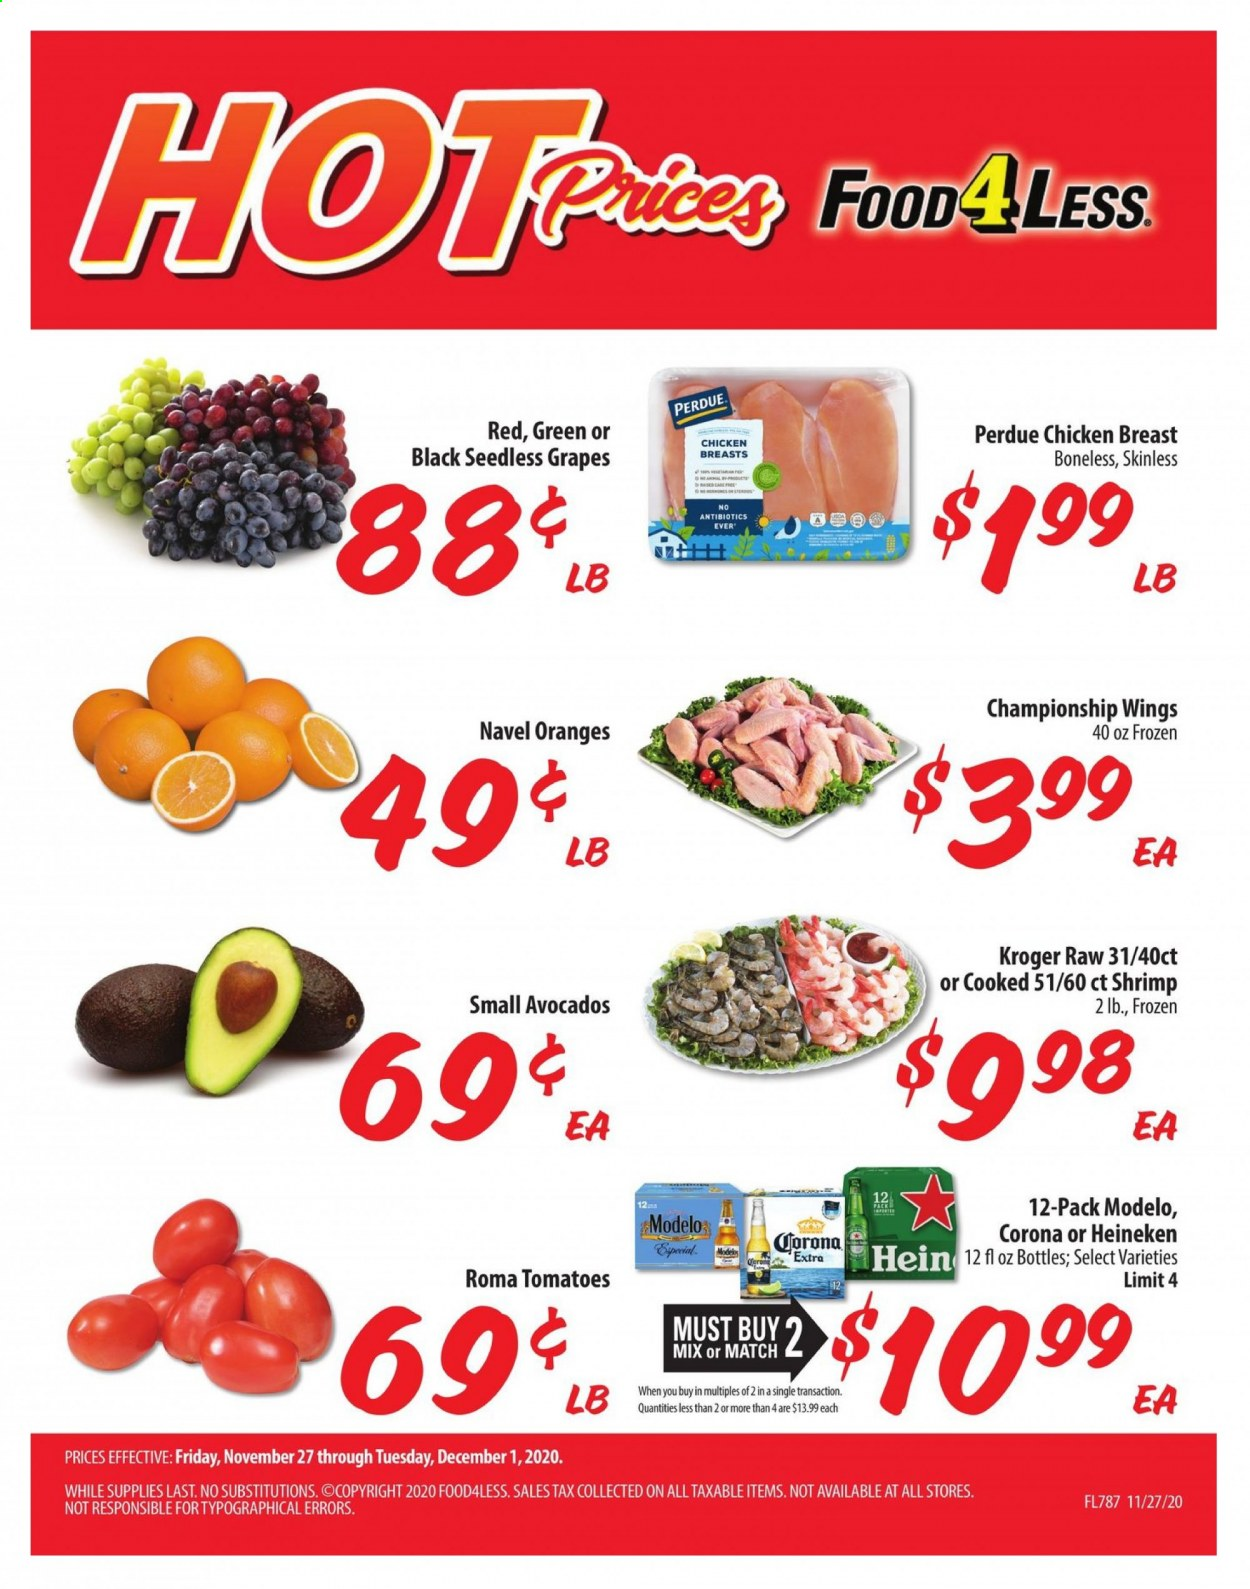 Food 4 Less Flyer - 11.27.2020 - 12.01.2020 - Sales products - avocado, frozen, grapes, seedless grapes, tomatoes, chicken, chicken breast, orange, corona, Heineken, shrimps. Page 1.